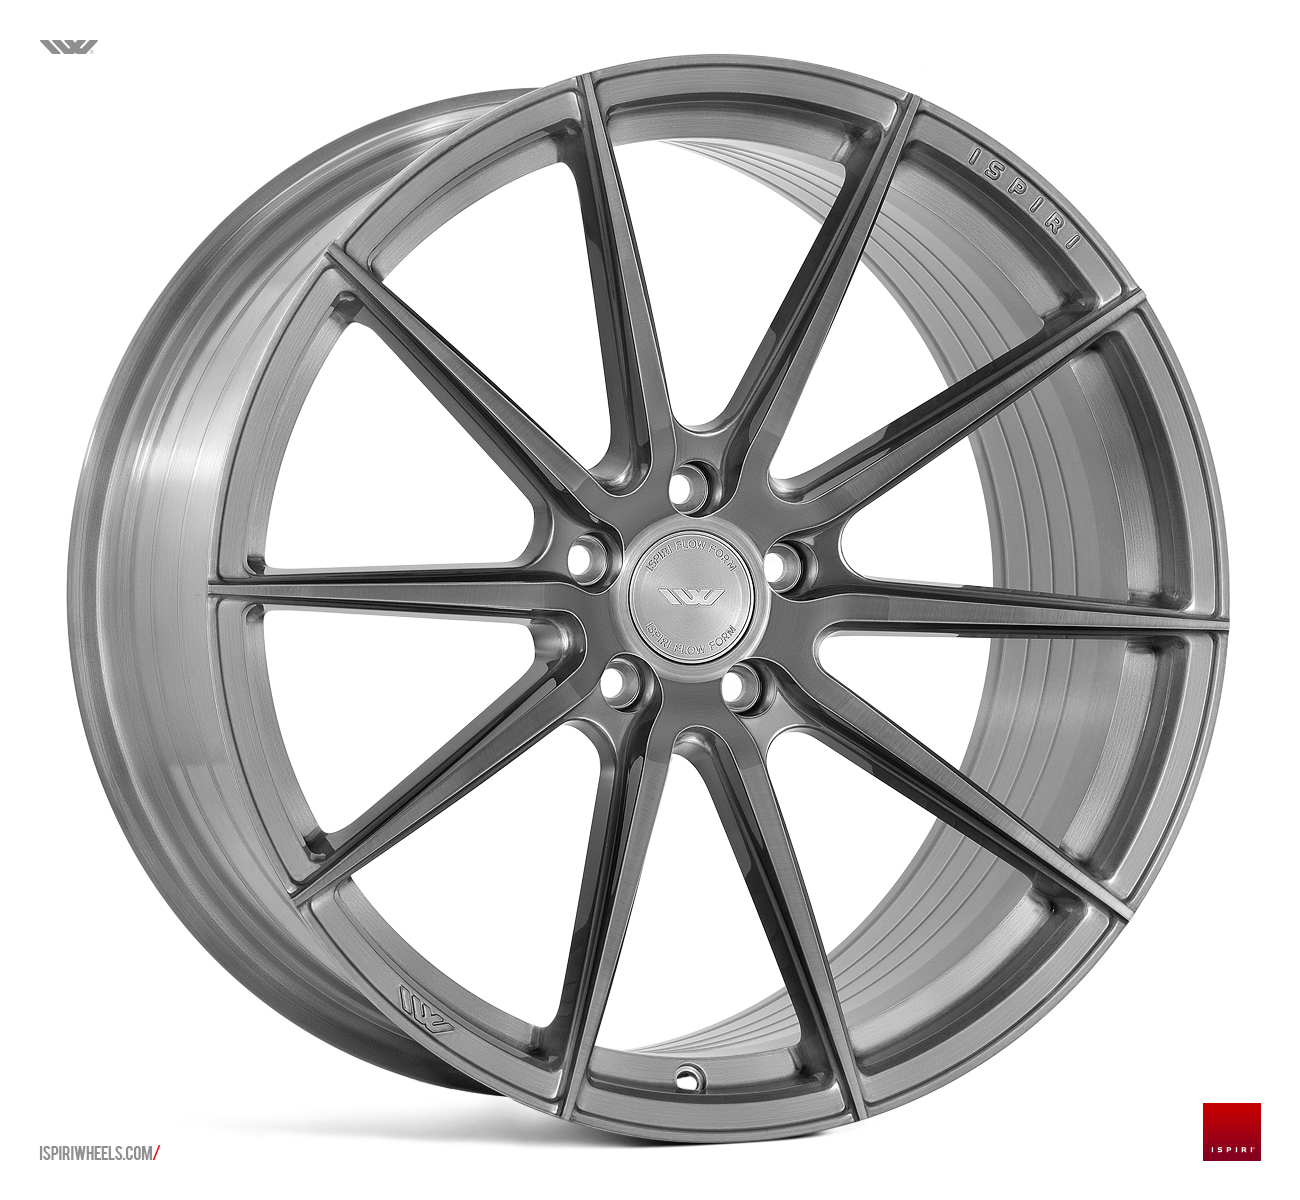 "NEW 20"" ISPIRI FFR1 MULTI-SPOKE ALLOY WHEELS IN BRUSHED CARBON TITANIUM, DEEPER CONCAVE 10.5"" ALL ROUND"